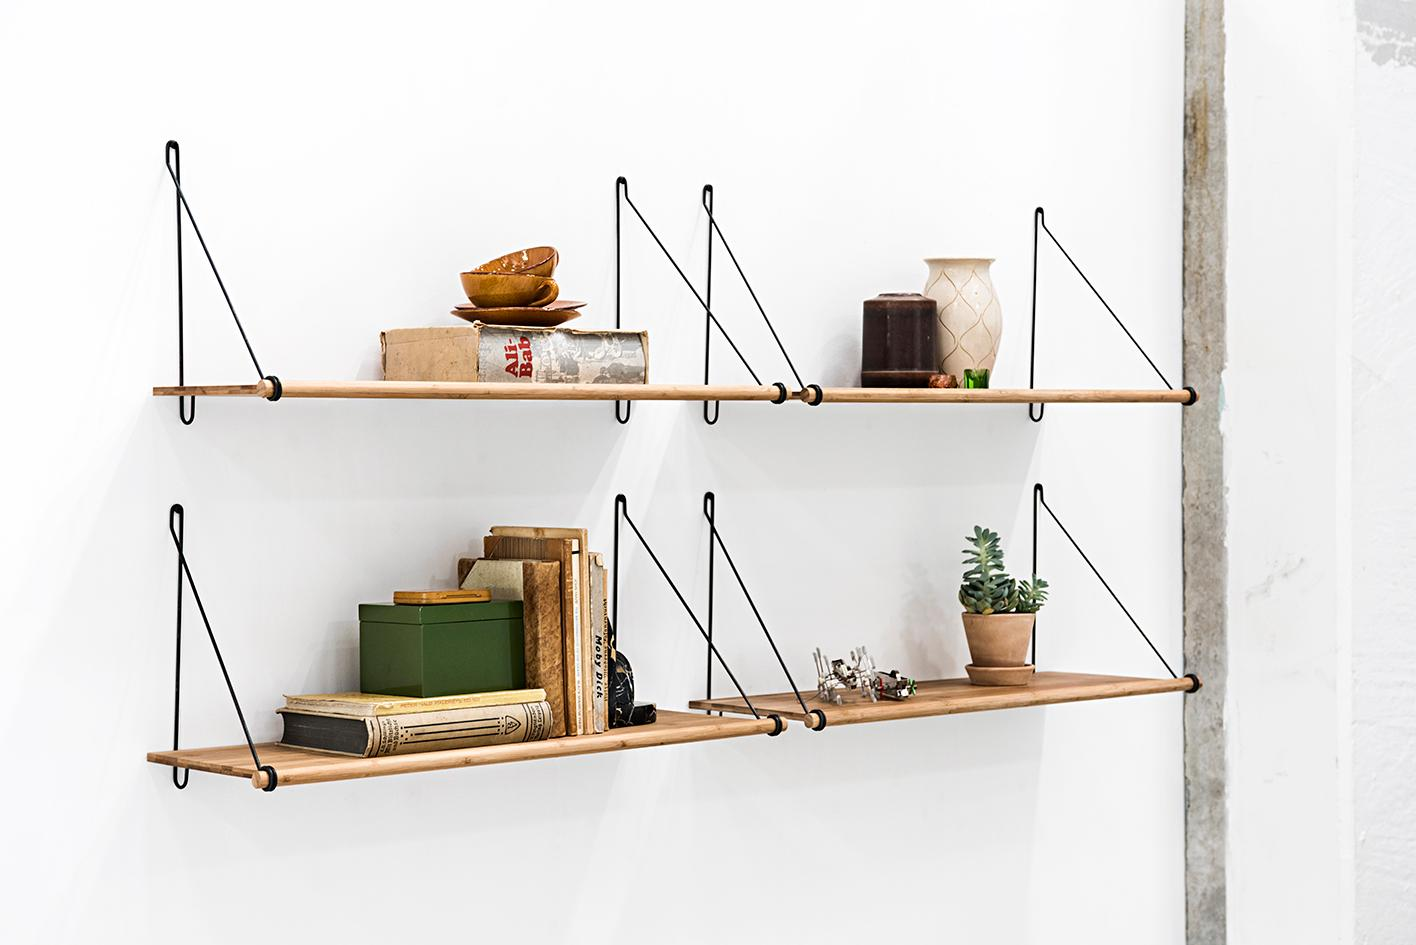 Modernes Wandregal LOOP SHELF von We Do Wood #bambus #wandregal #holzregal ©We Do Wood